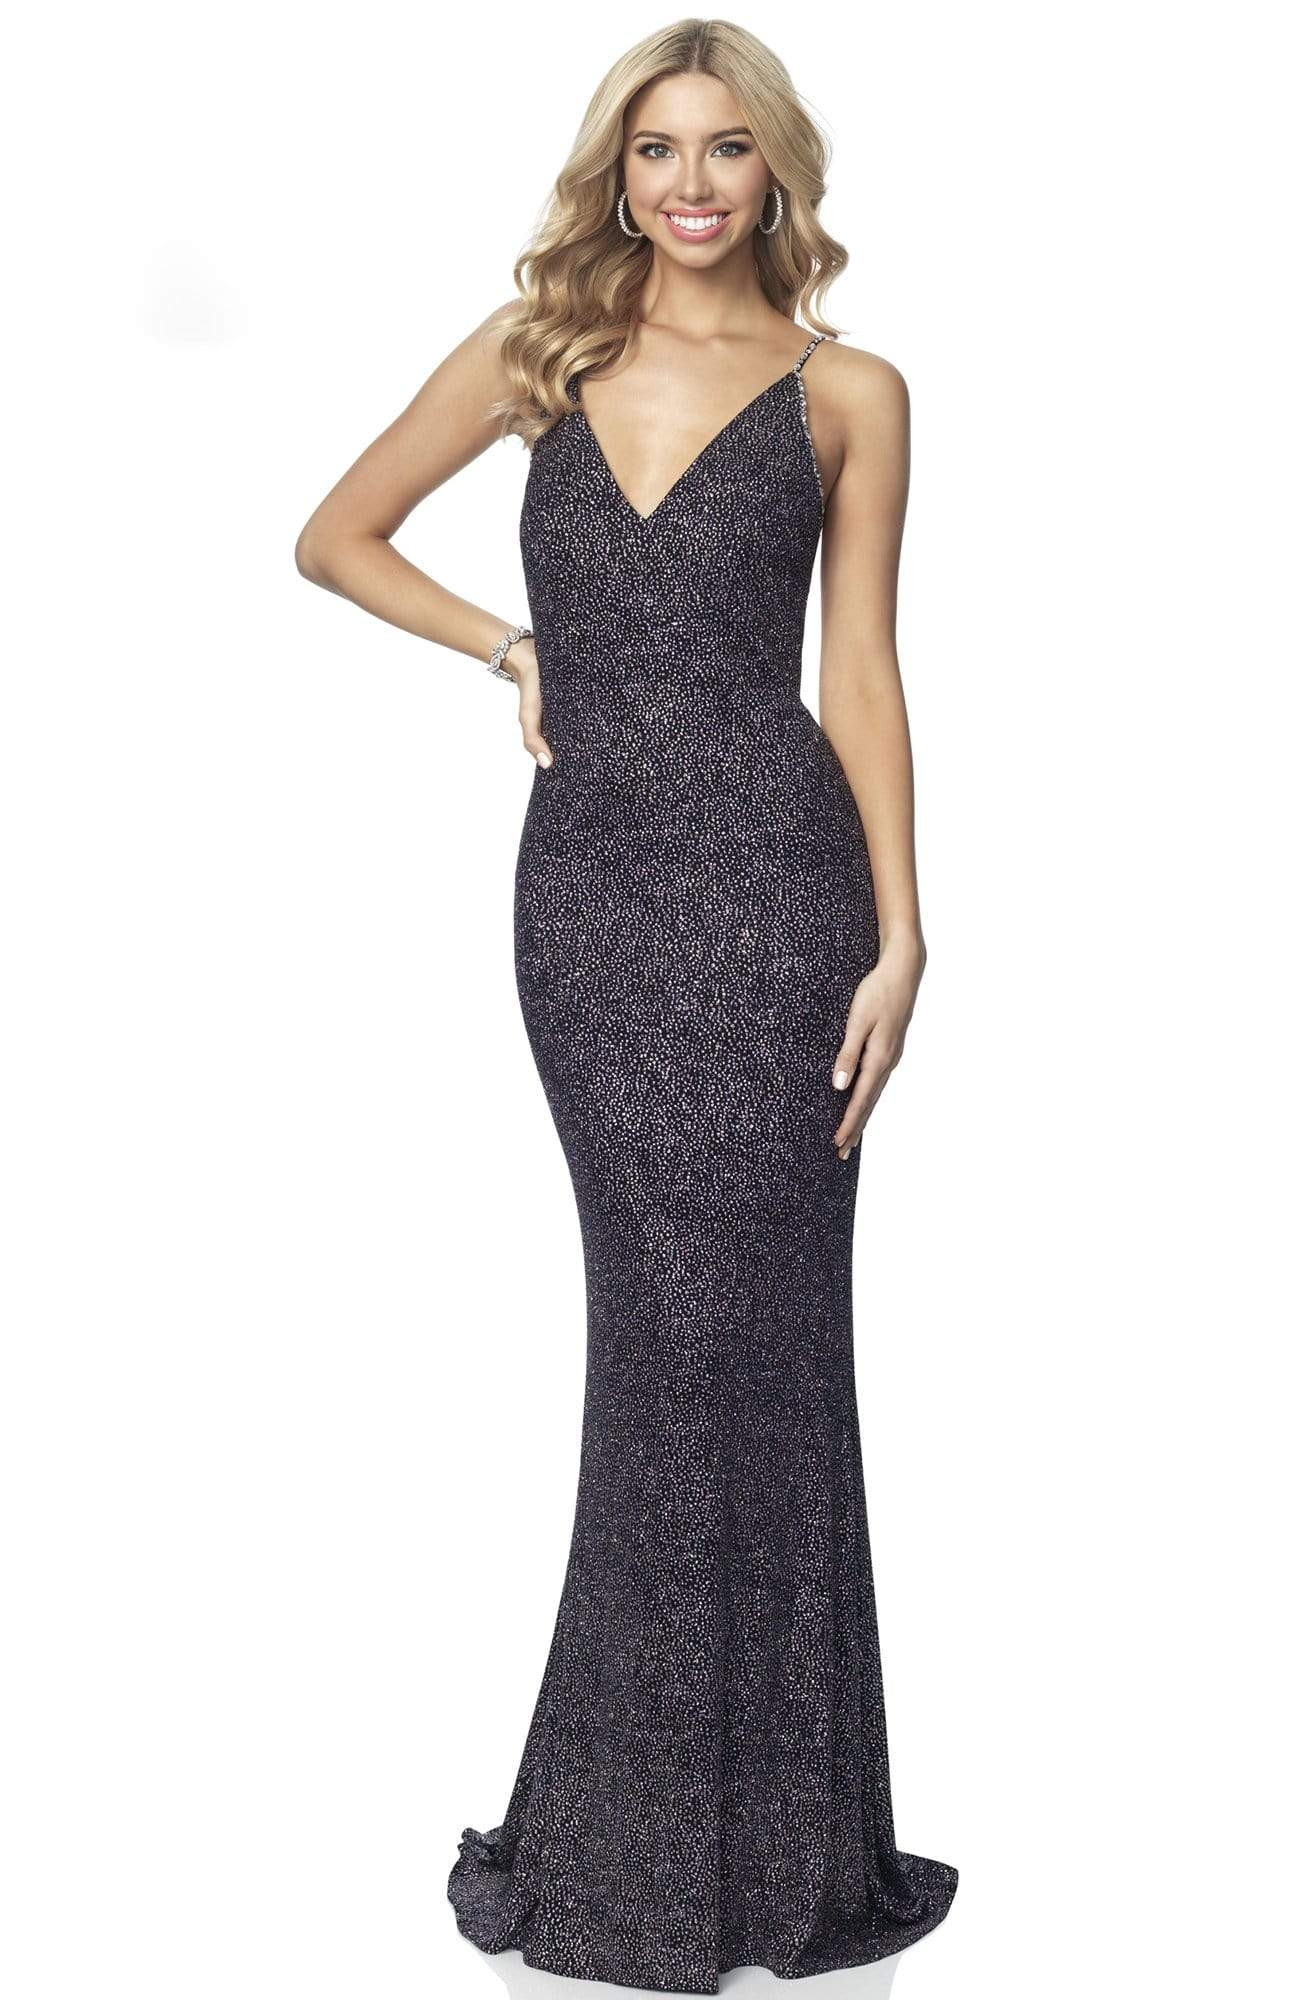 Blush by Alexia Designs - 11889 Sleeveless V Neck Glitter Knit Gown Evening Dresses 0 / Black